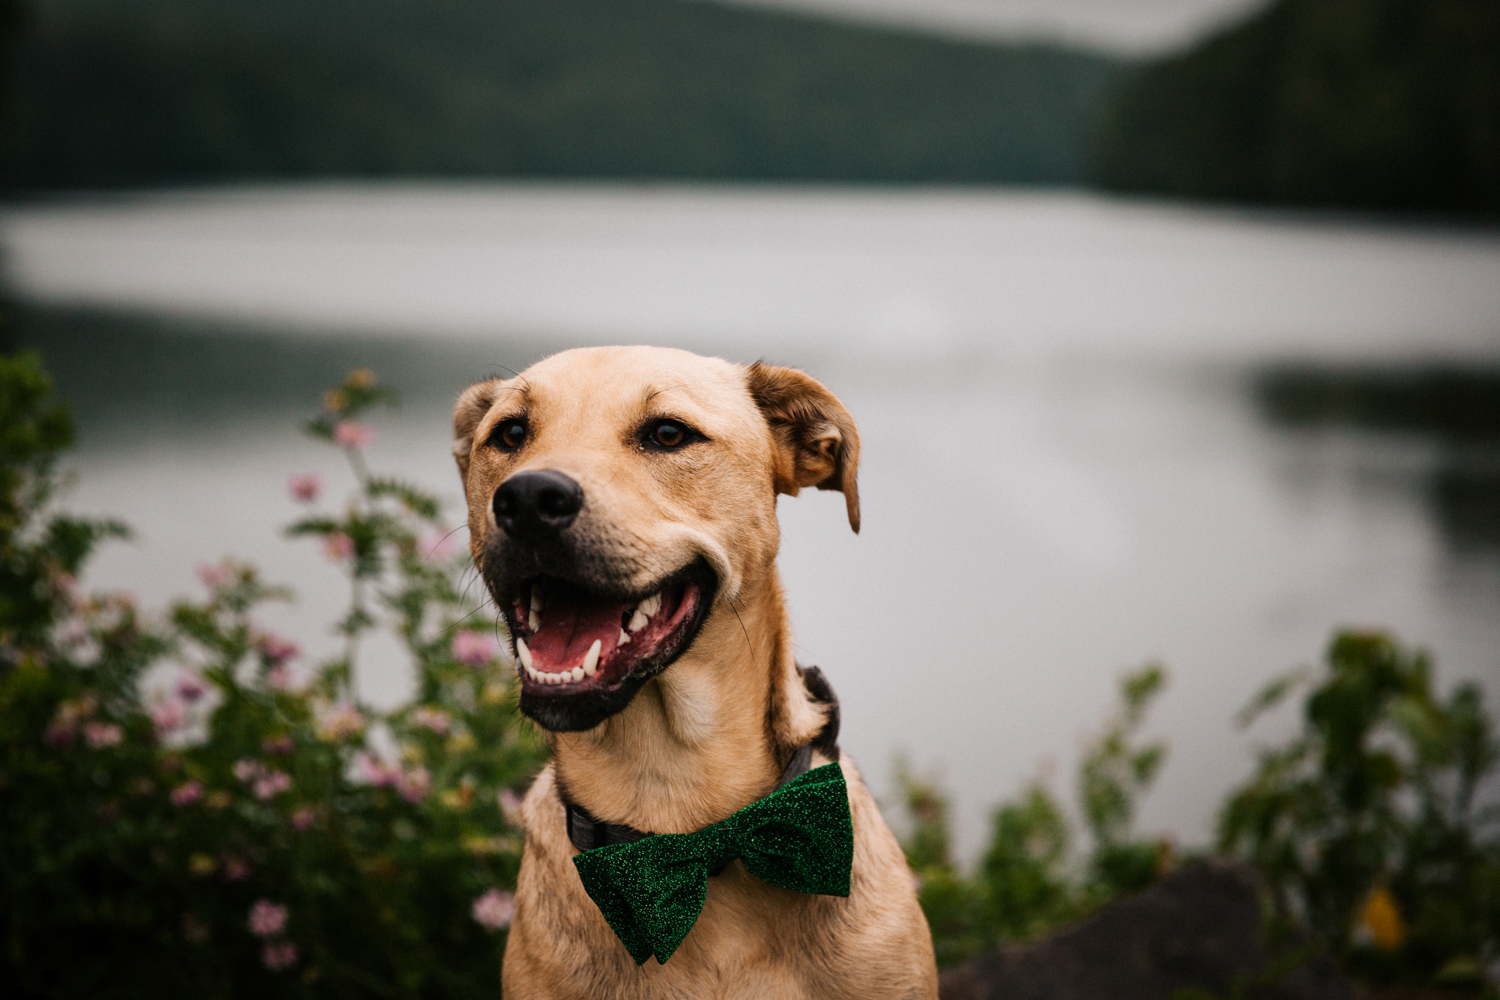 giuffrida-park-engagement-session-dog-puppy-bowtie-new-england-engagement-photographer.jpg